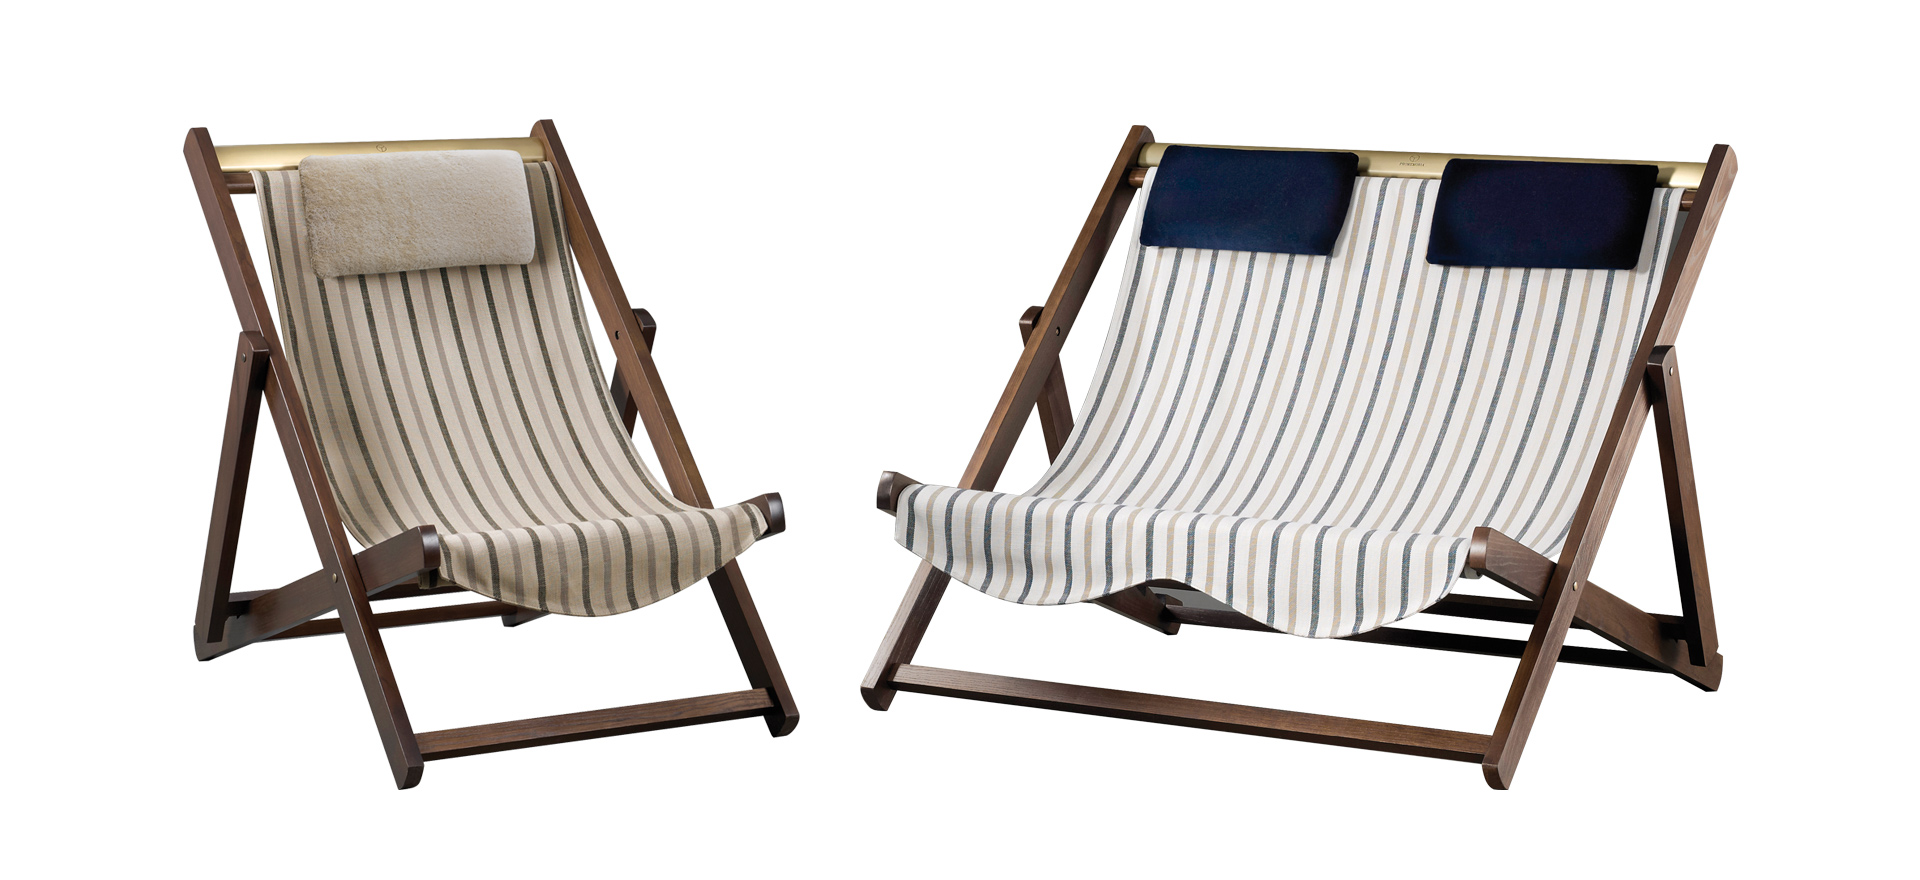 Menaggio is an outdoor wooden deckchair, covered in fabric or leather with bronze details, from Promemoria's outdoor catalogue | Promemoria